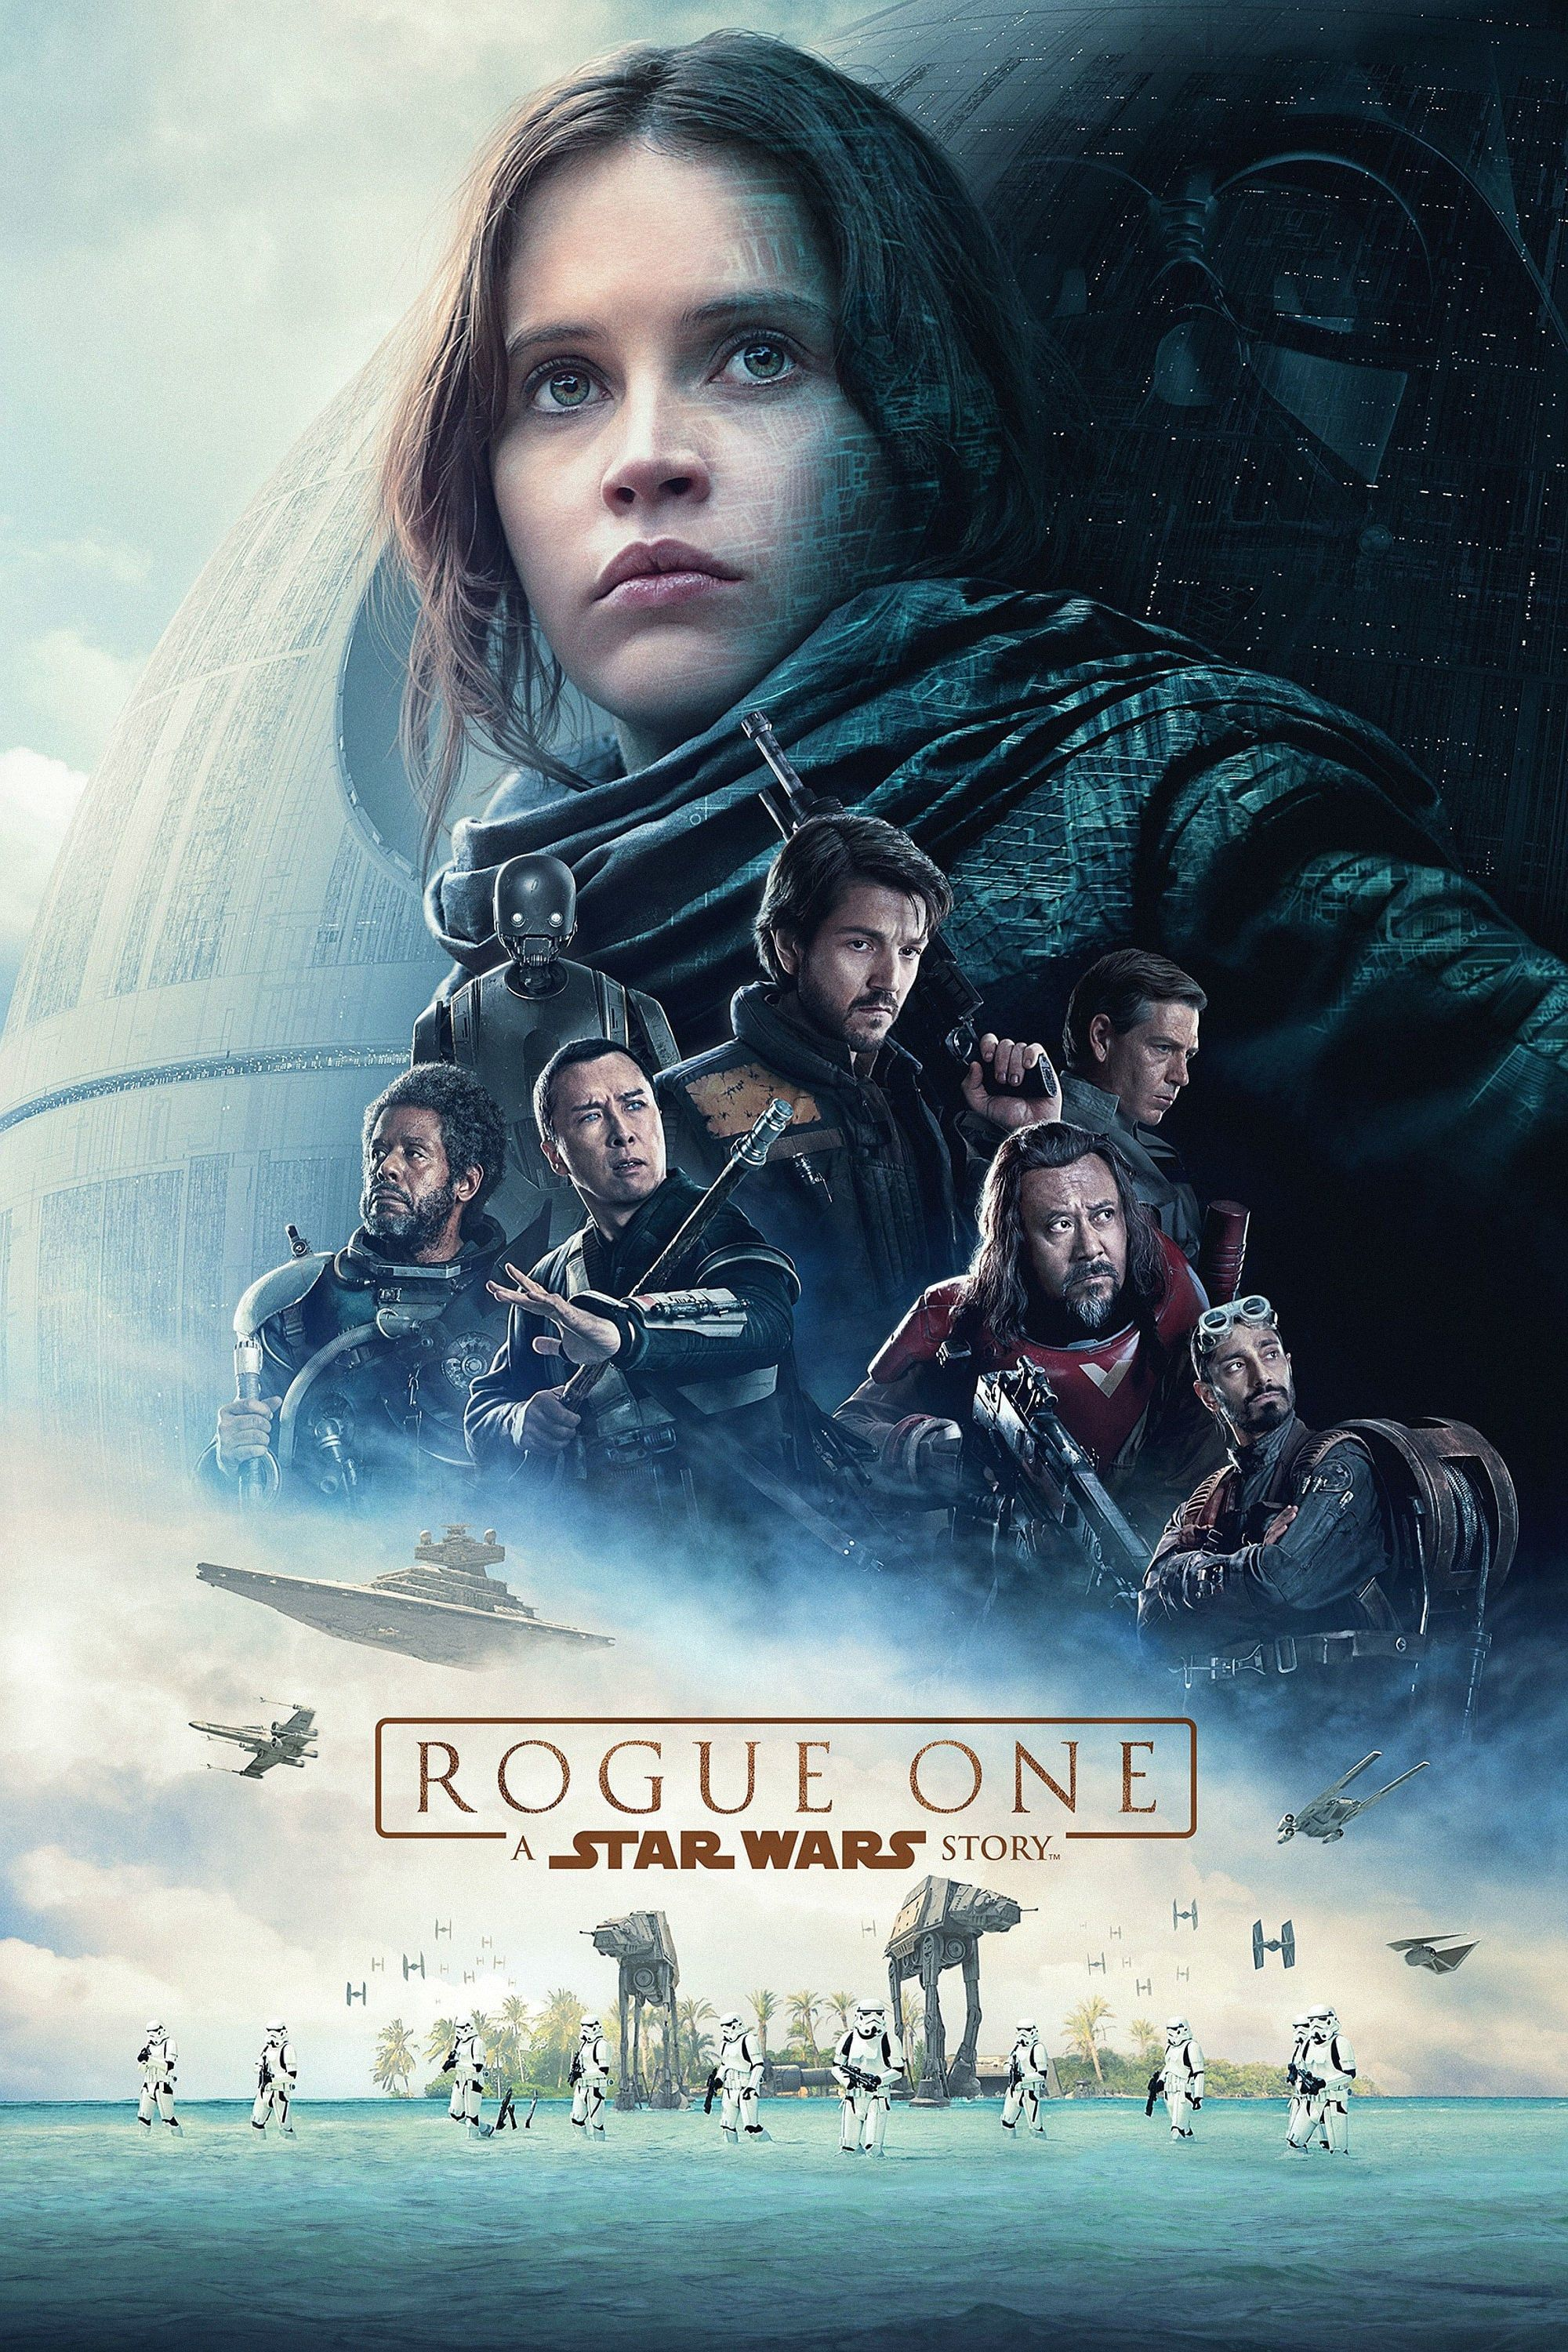 Watch Movie Full Rogue One A Star Wars Story Hd Free Download